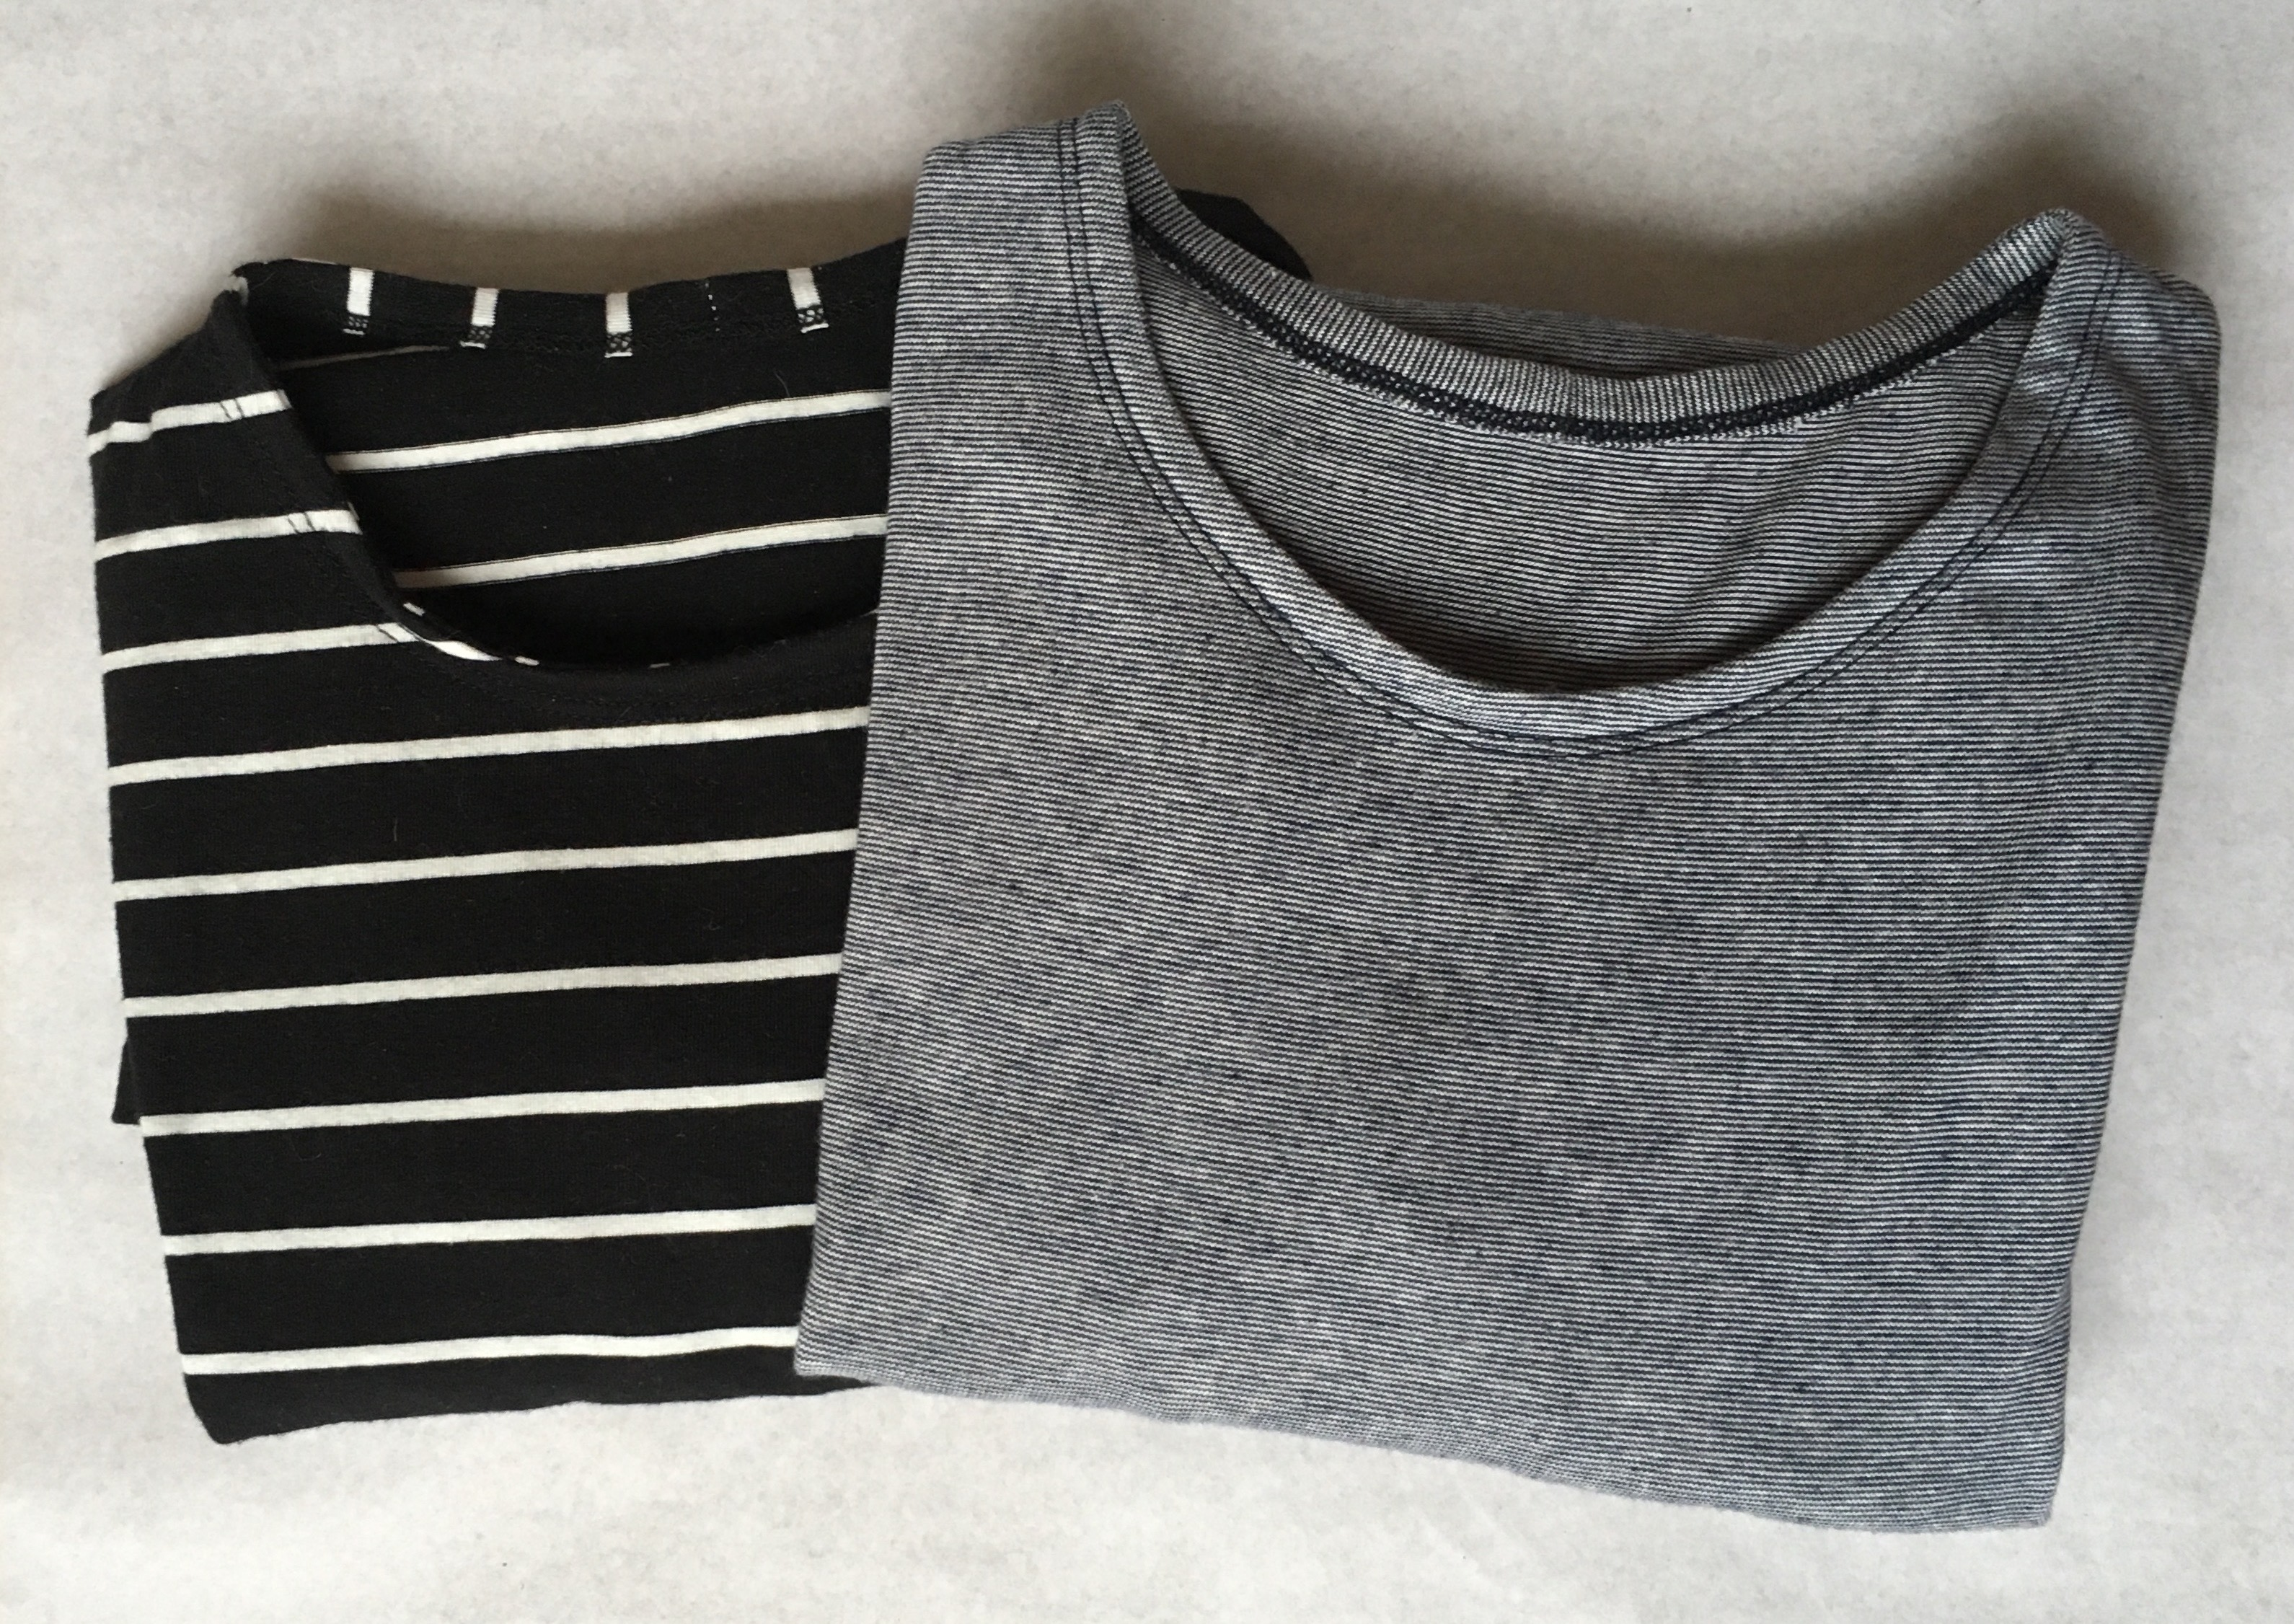 Second serie homemade basic T-shirts